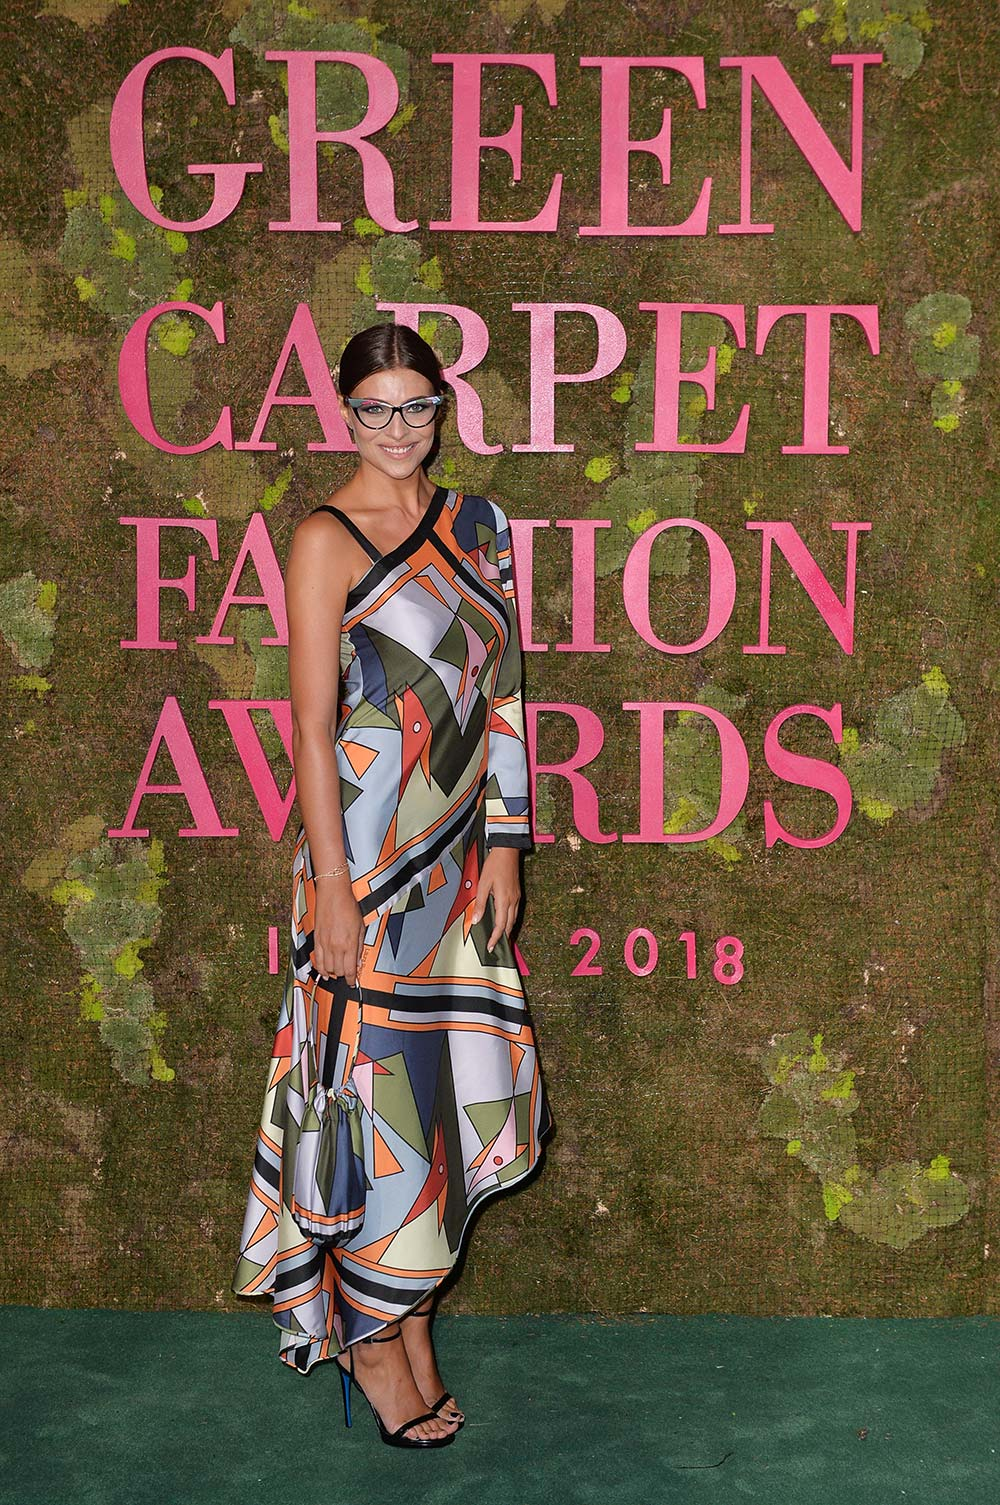 Green Carpet Fashion Awards 2018 - Cristina Chiabotto - Hair & Makeup Massimo Serini